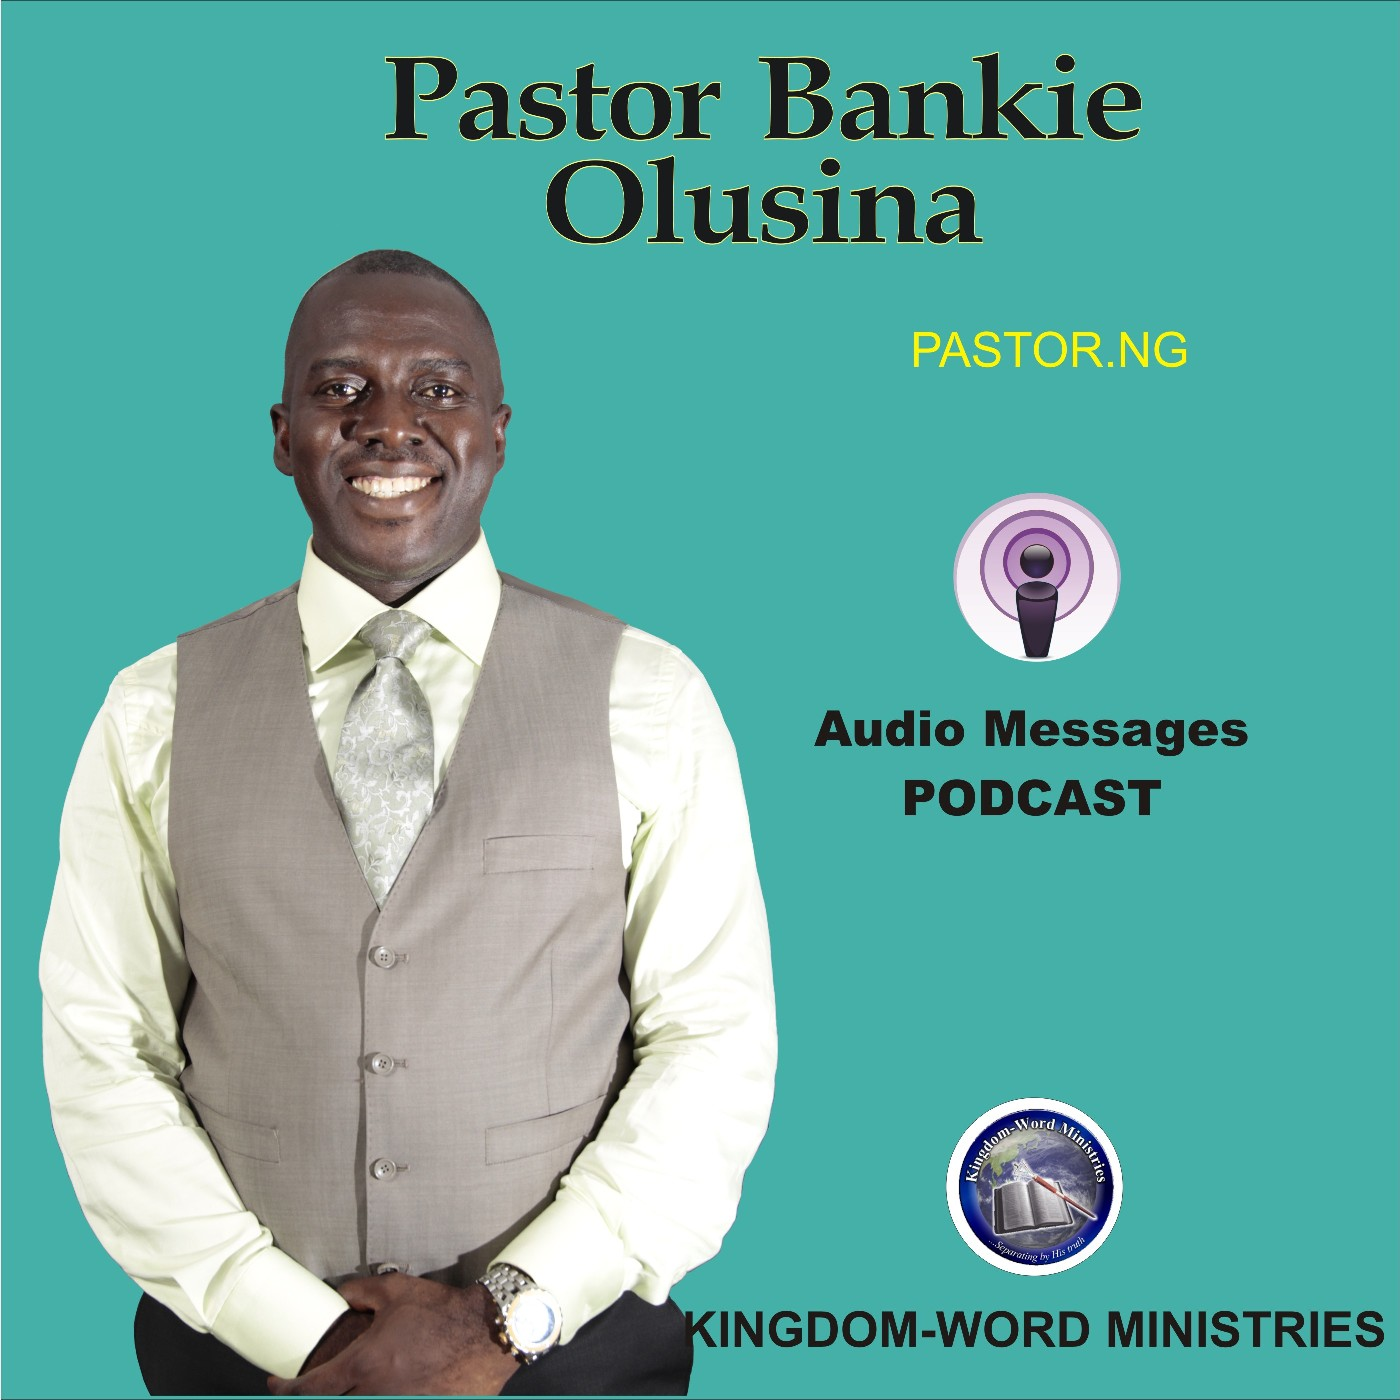 Pastor Bankie Olusina Sermon Audio Podcast